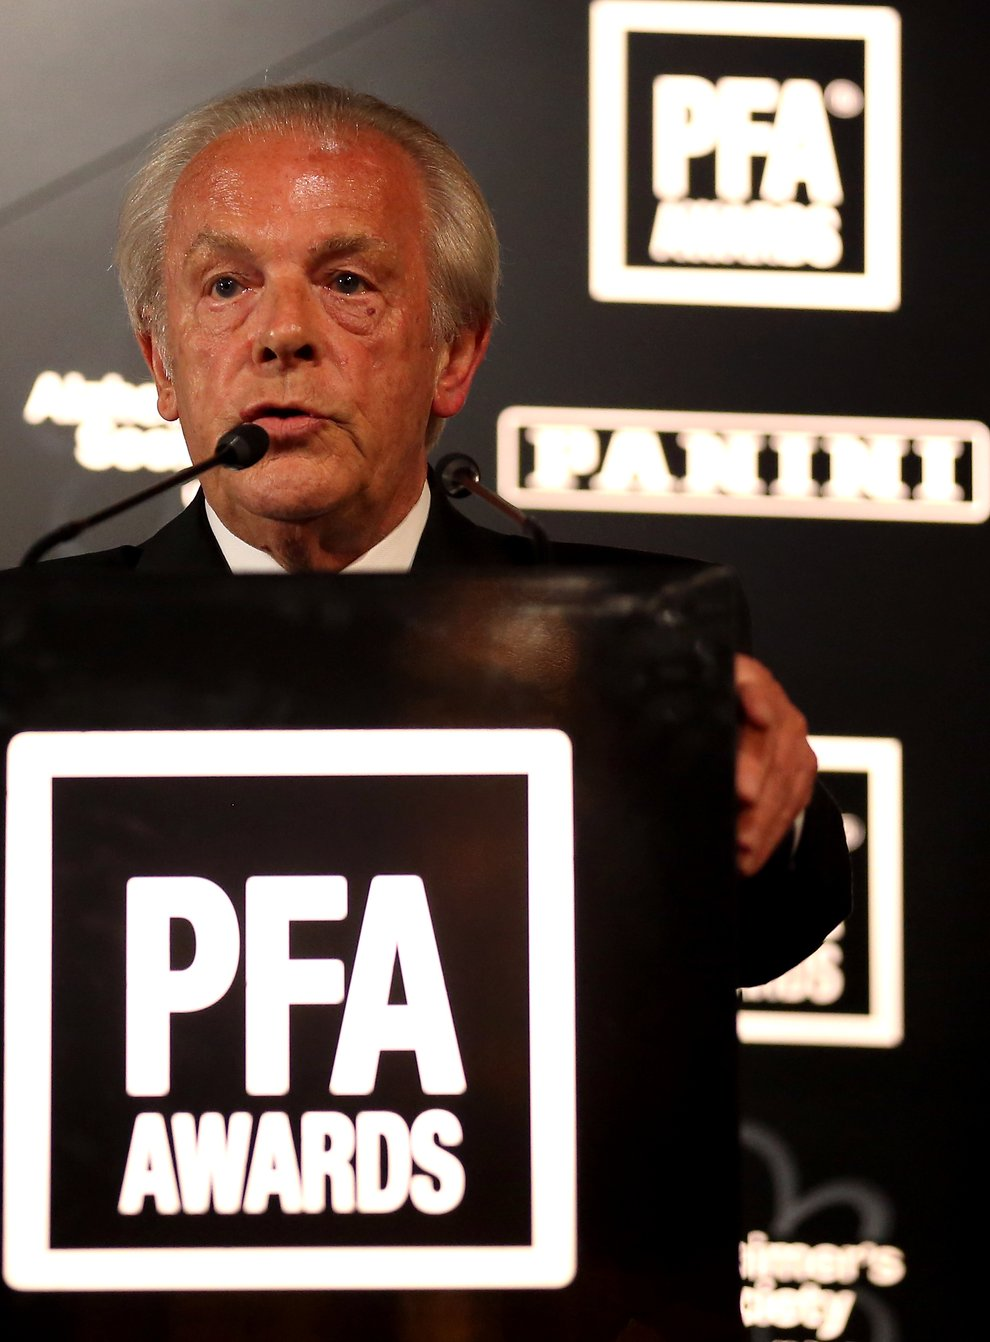 Gordon Taylor was appointed PFA chief executive in 1981